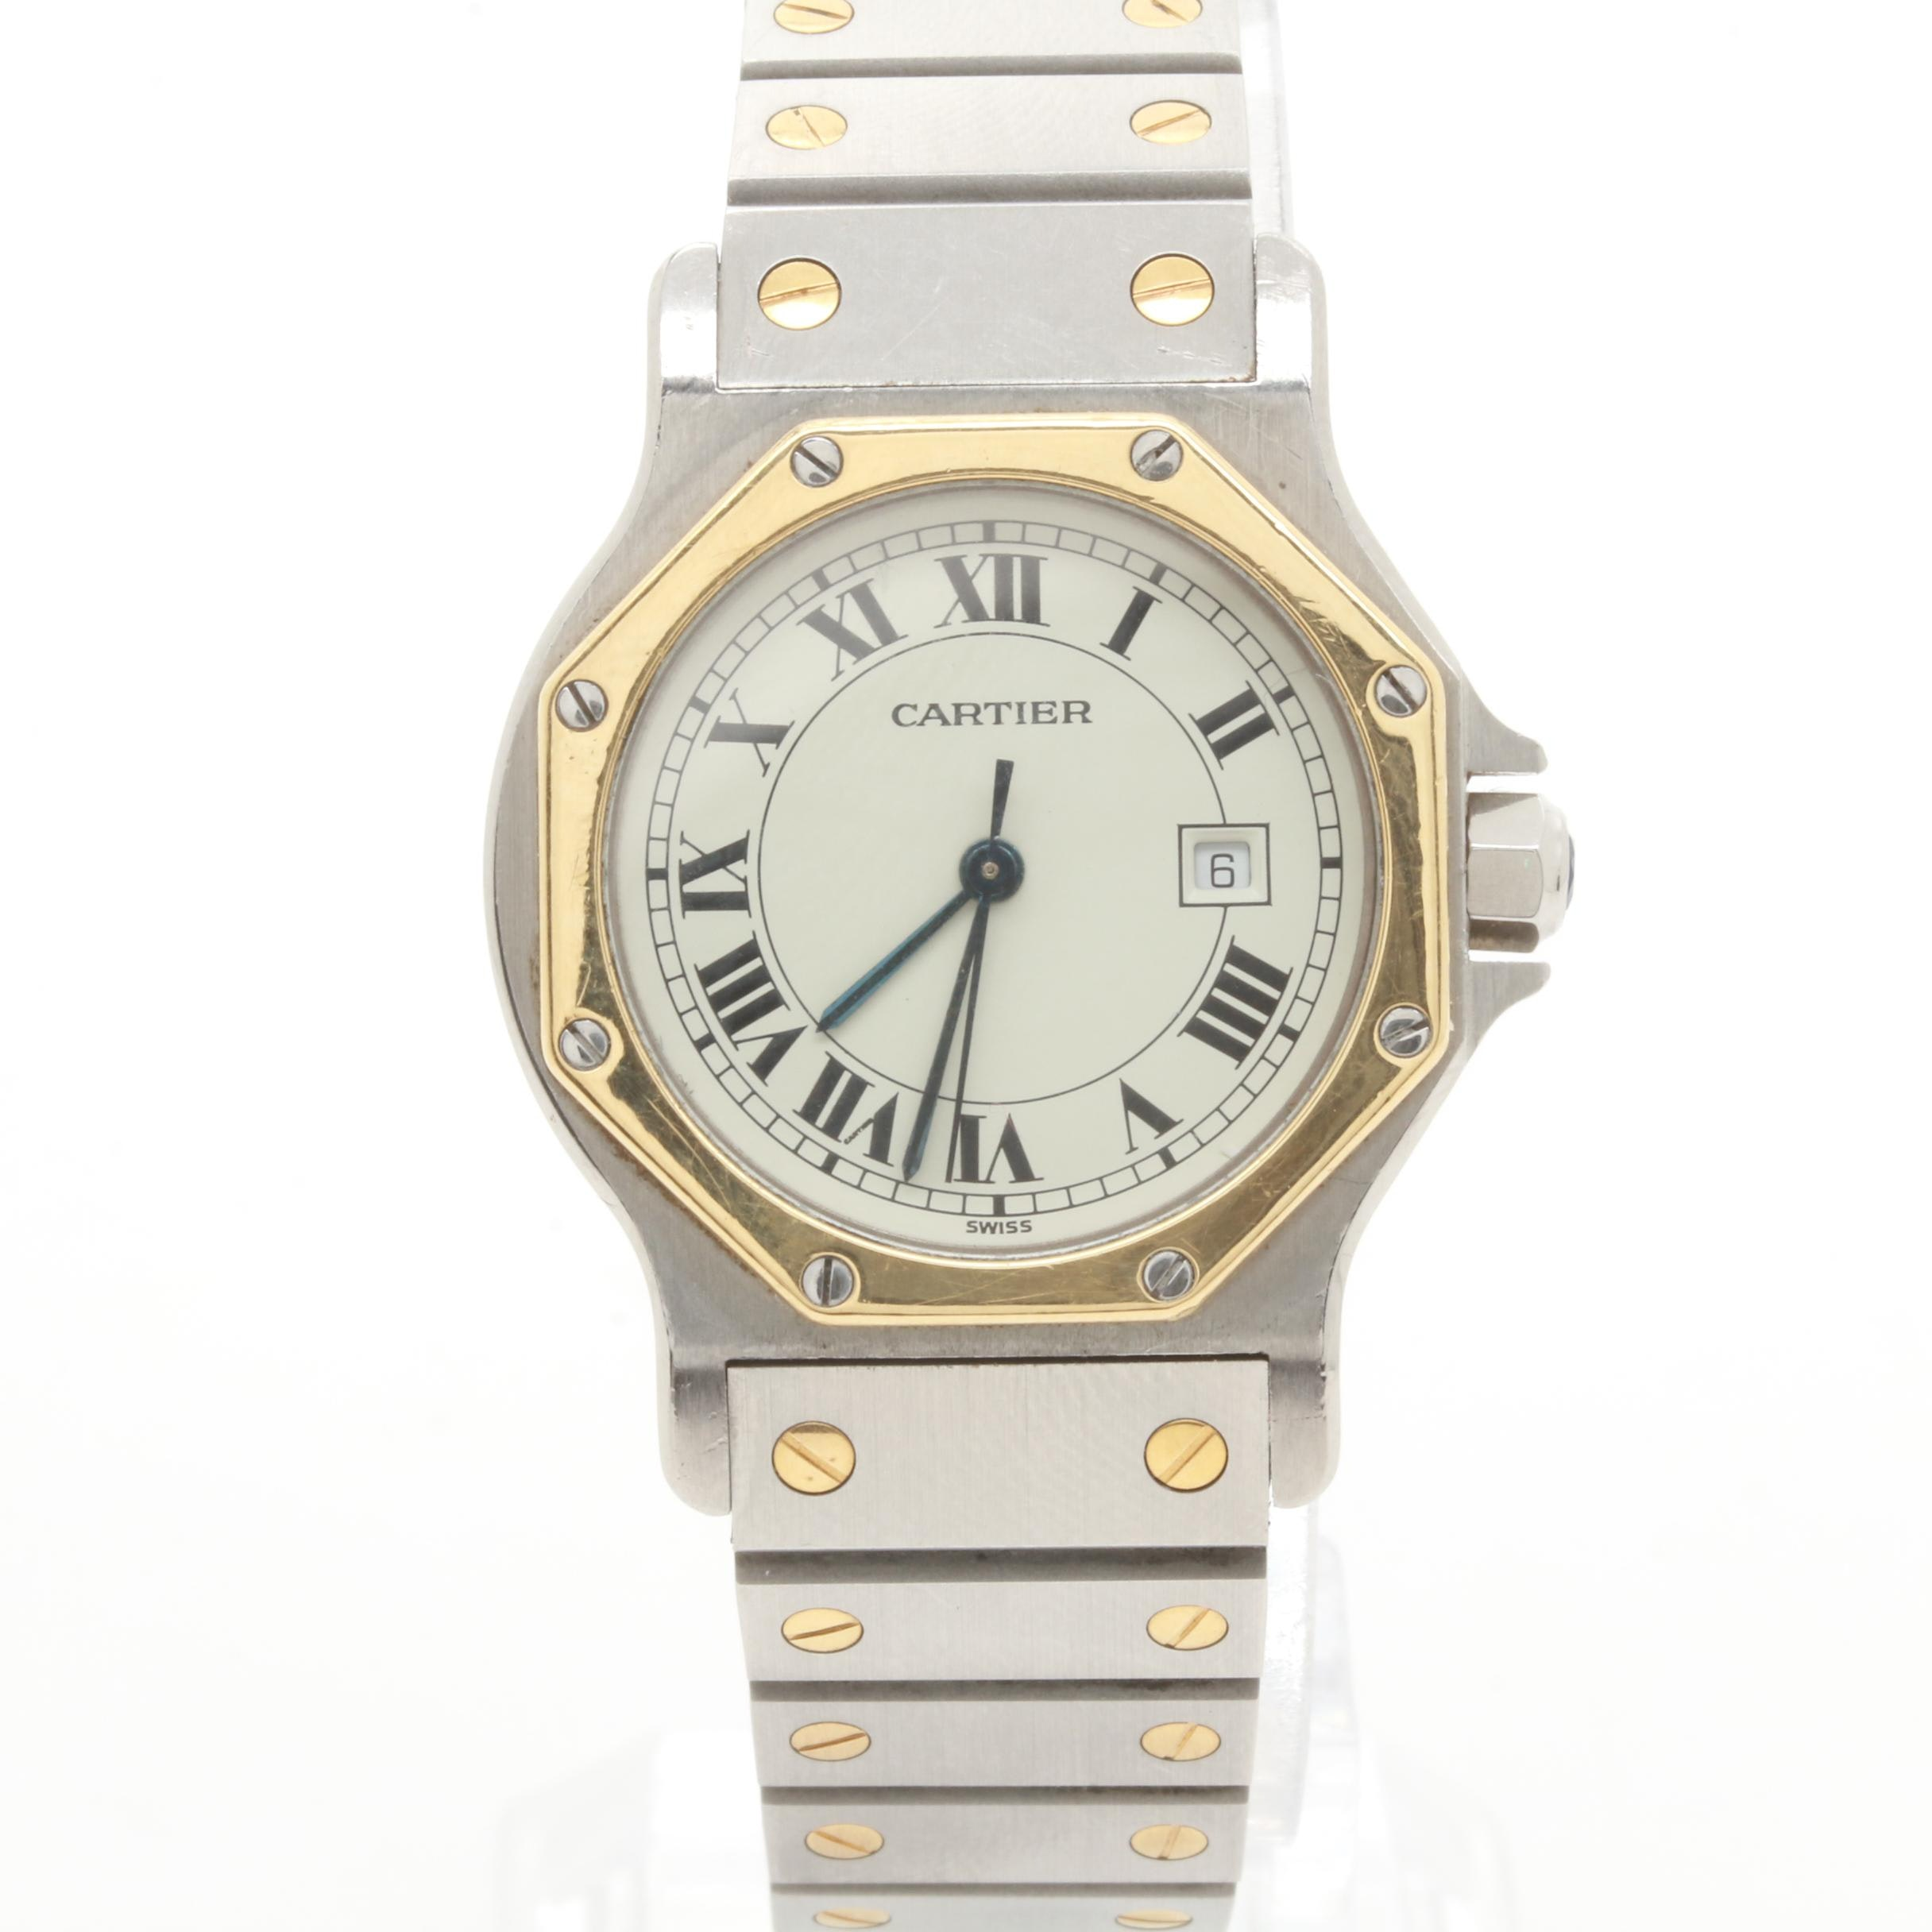 Cartier Stainless Steel and 18K Yellow Gold Wristwatch